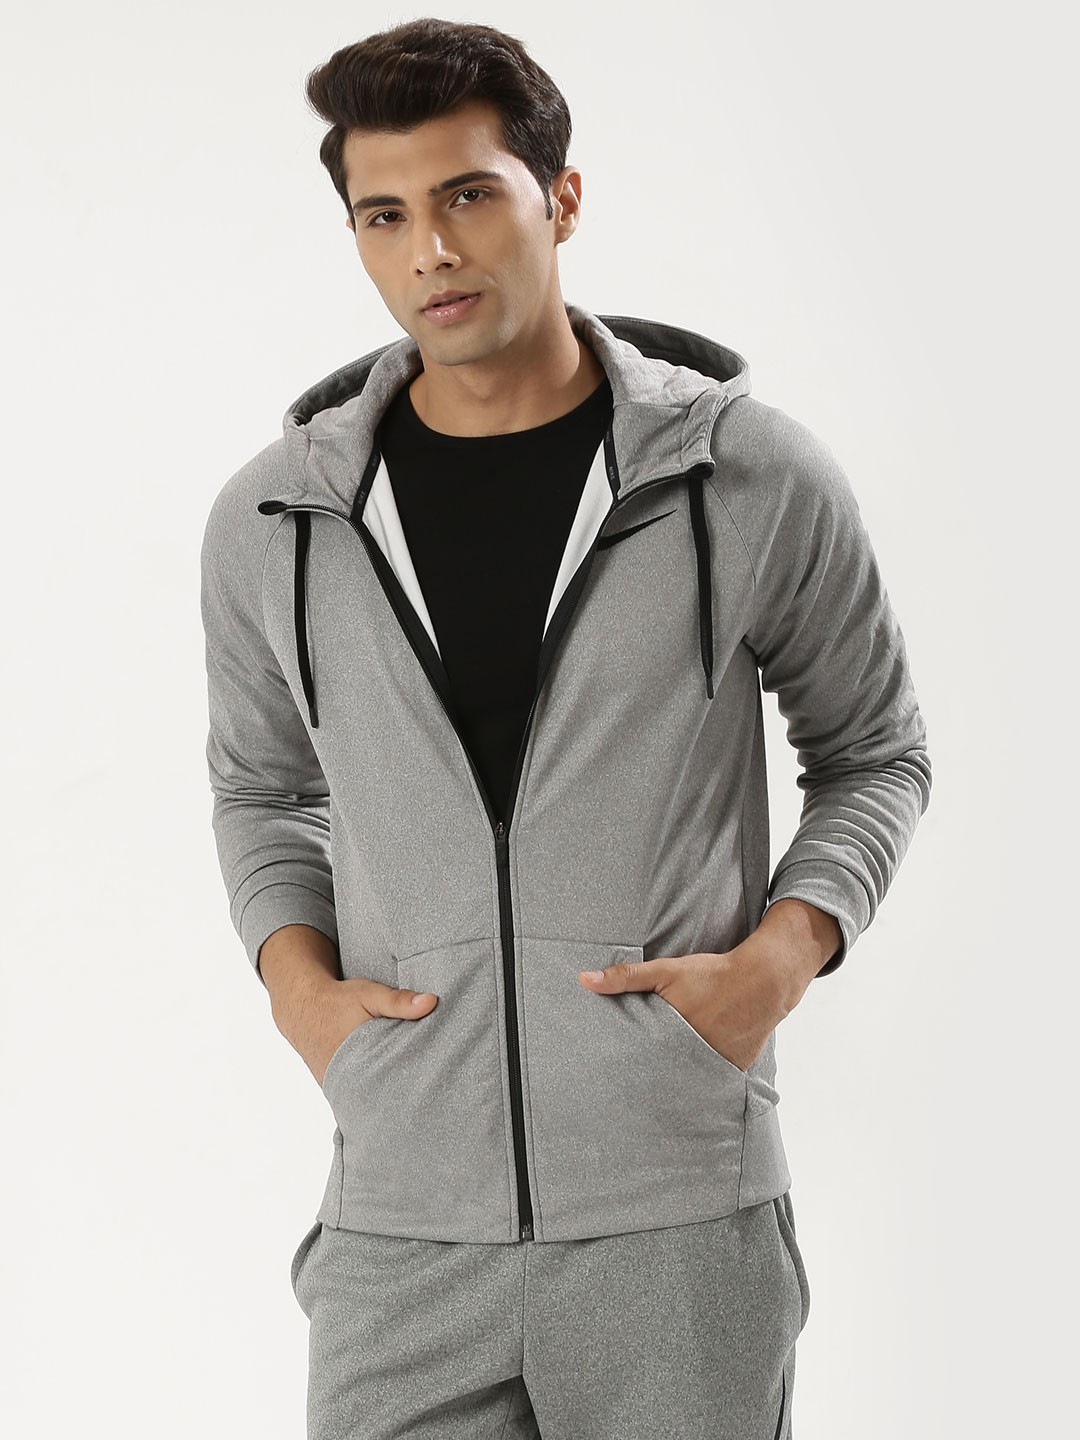 Nike Hoodie Carbon Heather Buy Nike Carbon Heather Black Therma Training Hoodie For Men